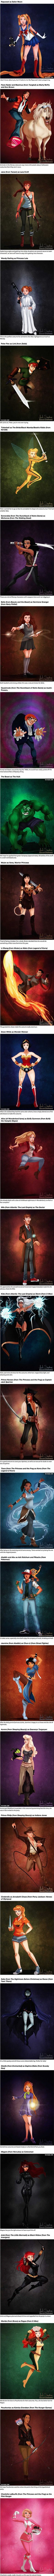 This Is What Would Happen If 31 Disney Characters Dressed Up On Halloween.